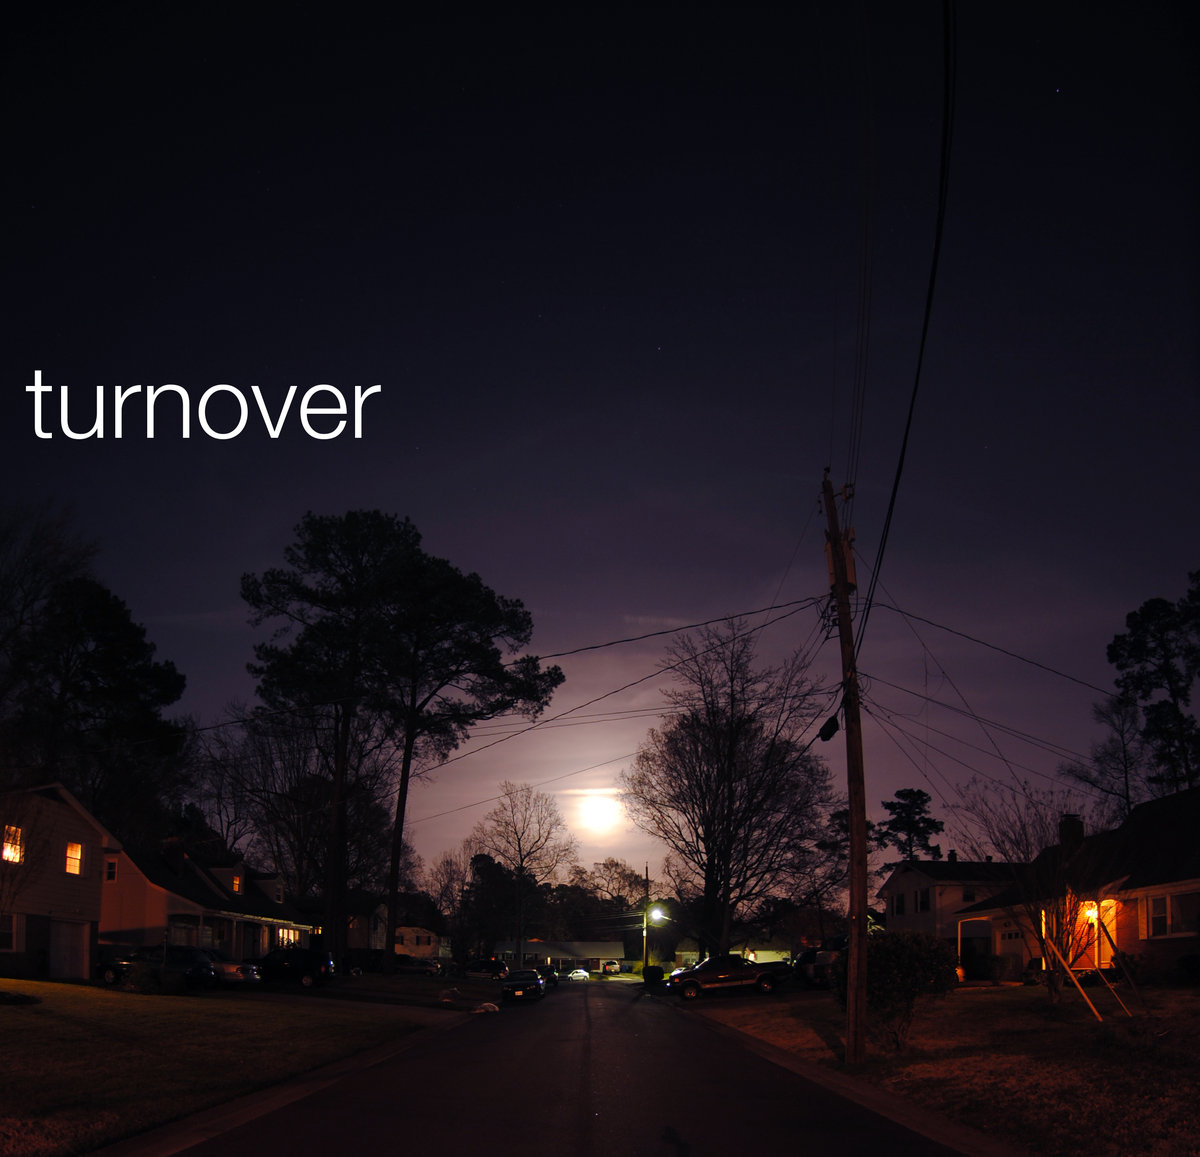 Turnover